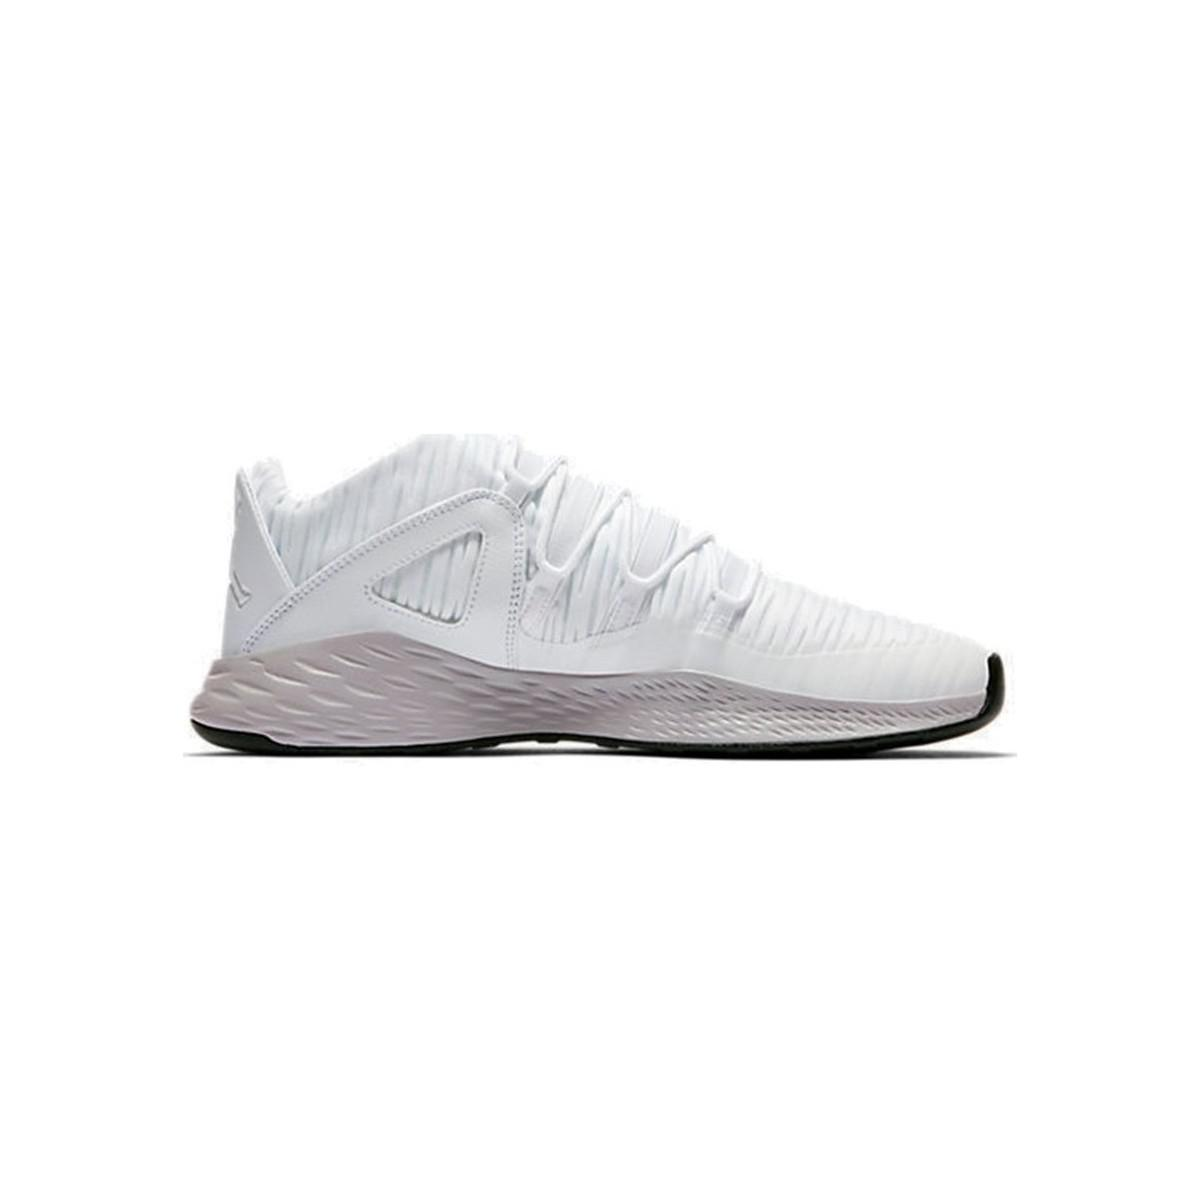 f4e08a374705 Nike Air Jordan Formula 23 Low Men s Basketball Trainers (shoes) In ...